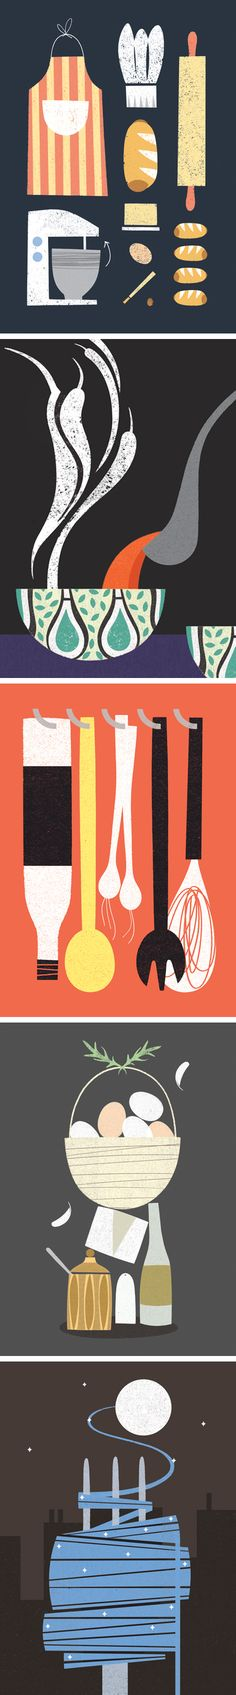 Recipe book illustrations by Ellie Tzoni